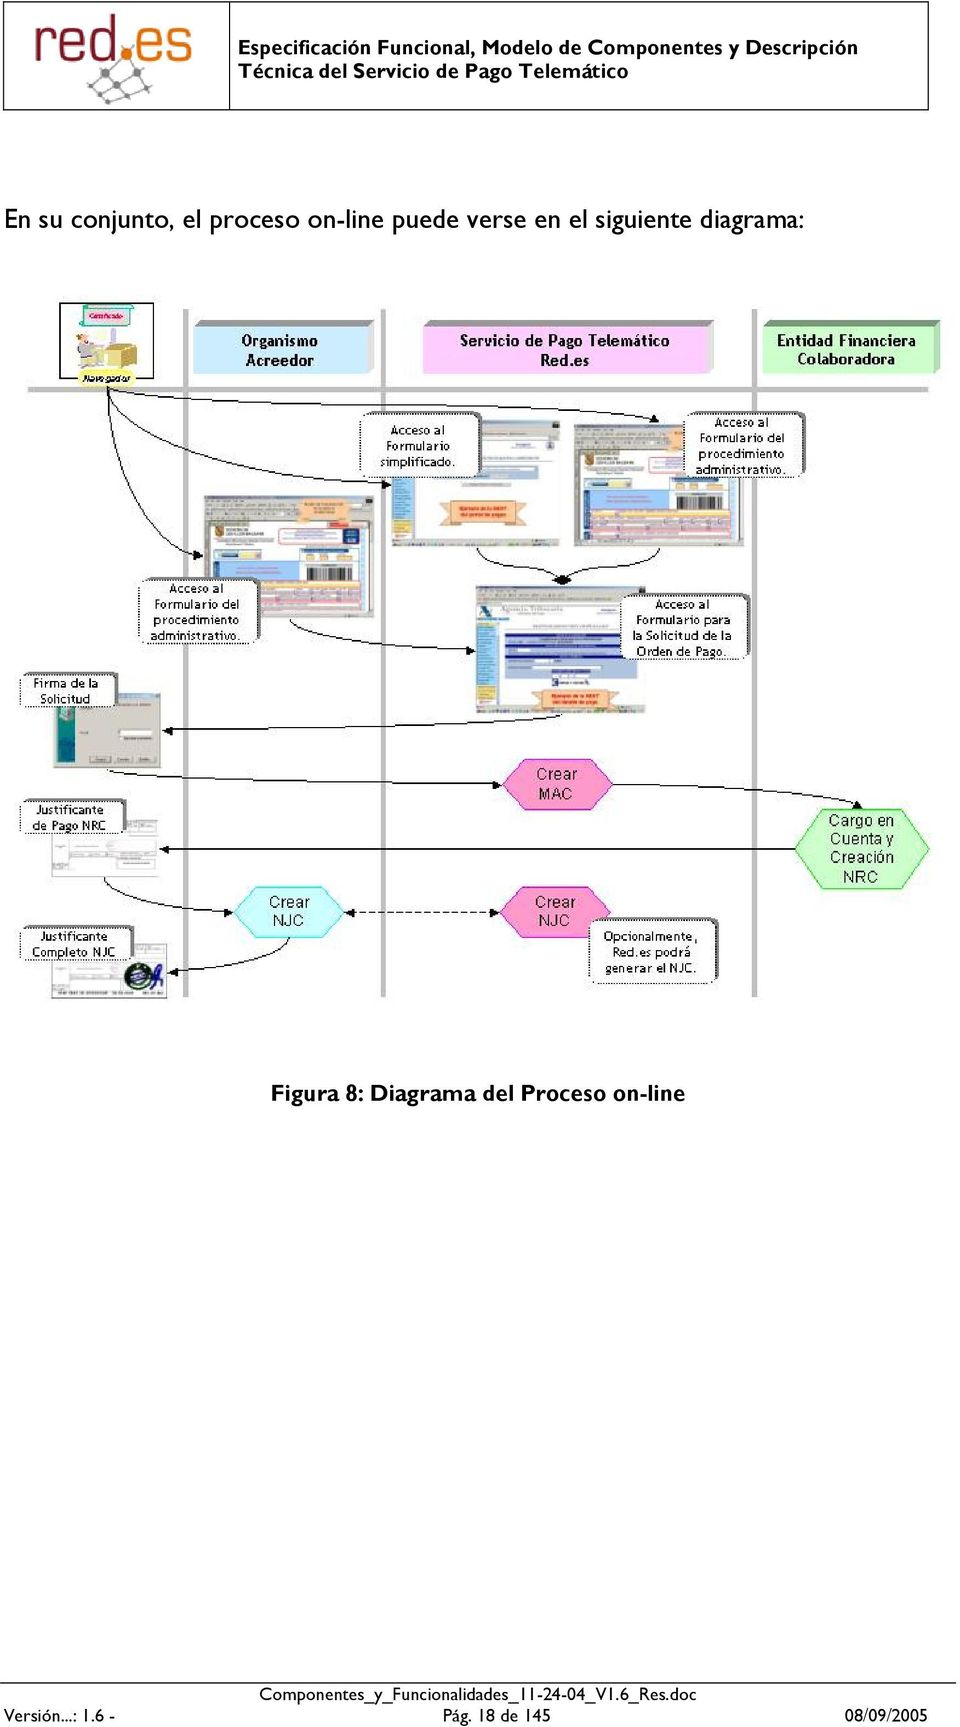 Figura 8: Diagrama del Proceso on-line